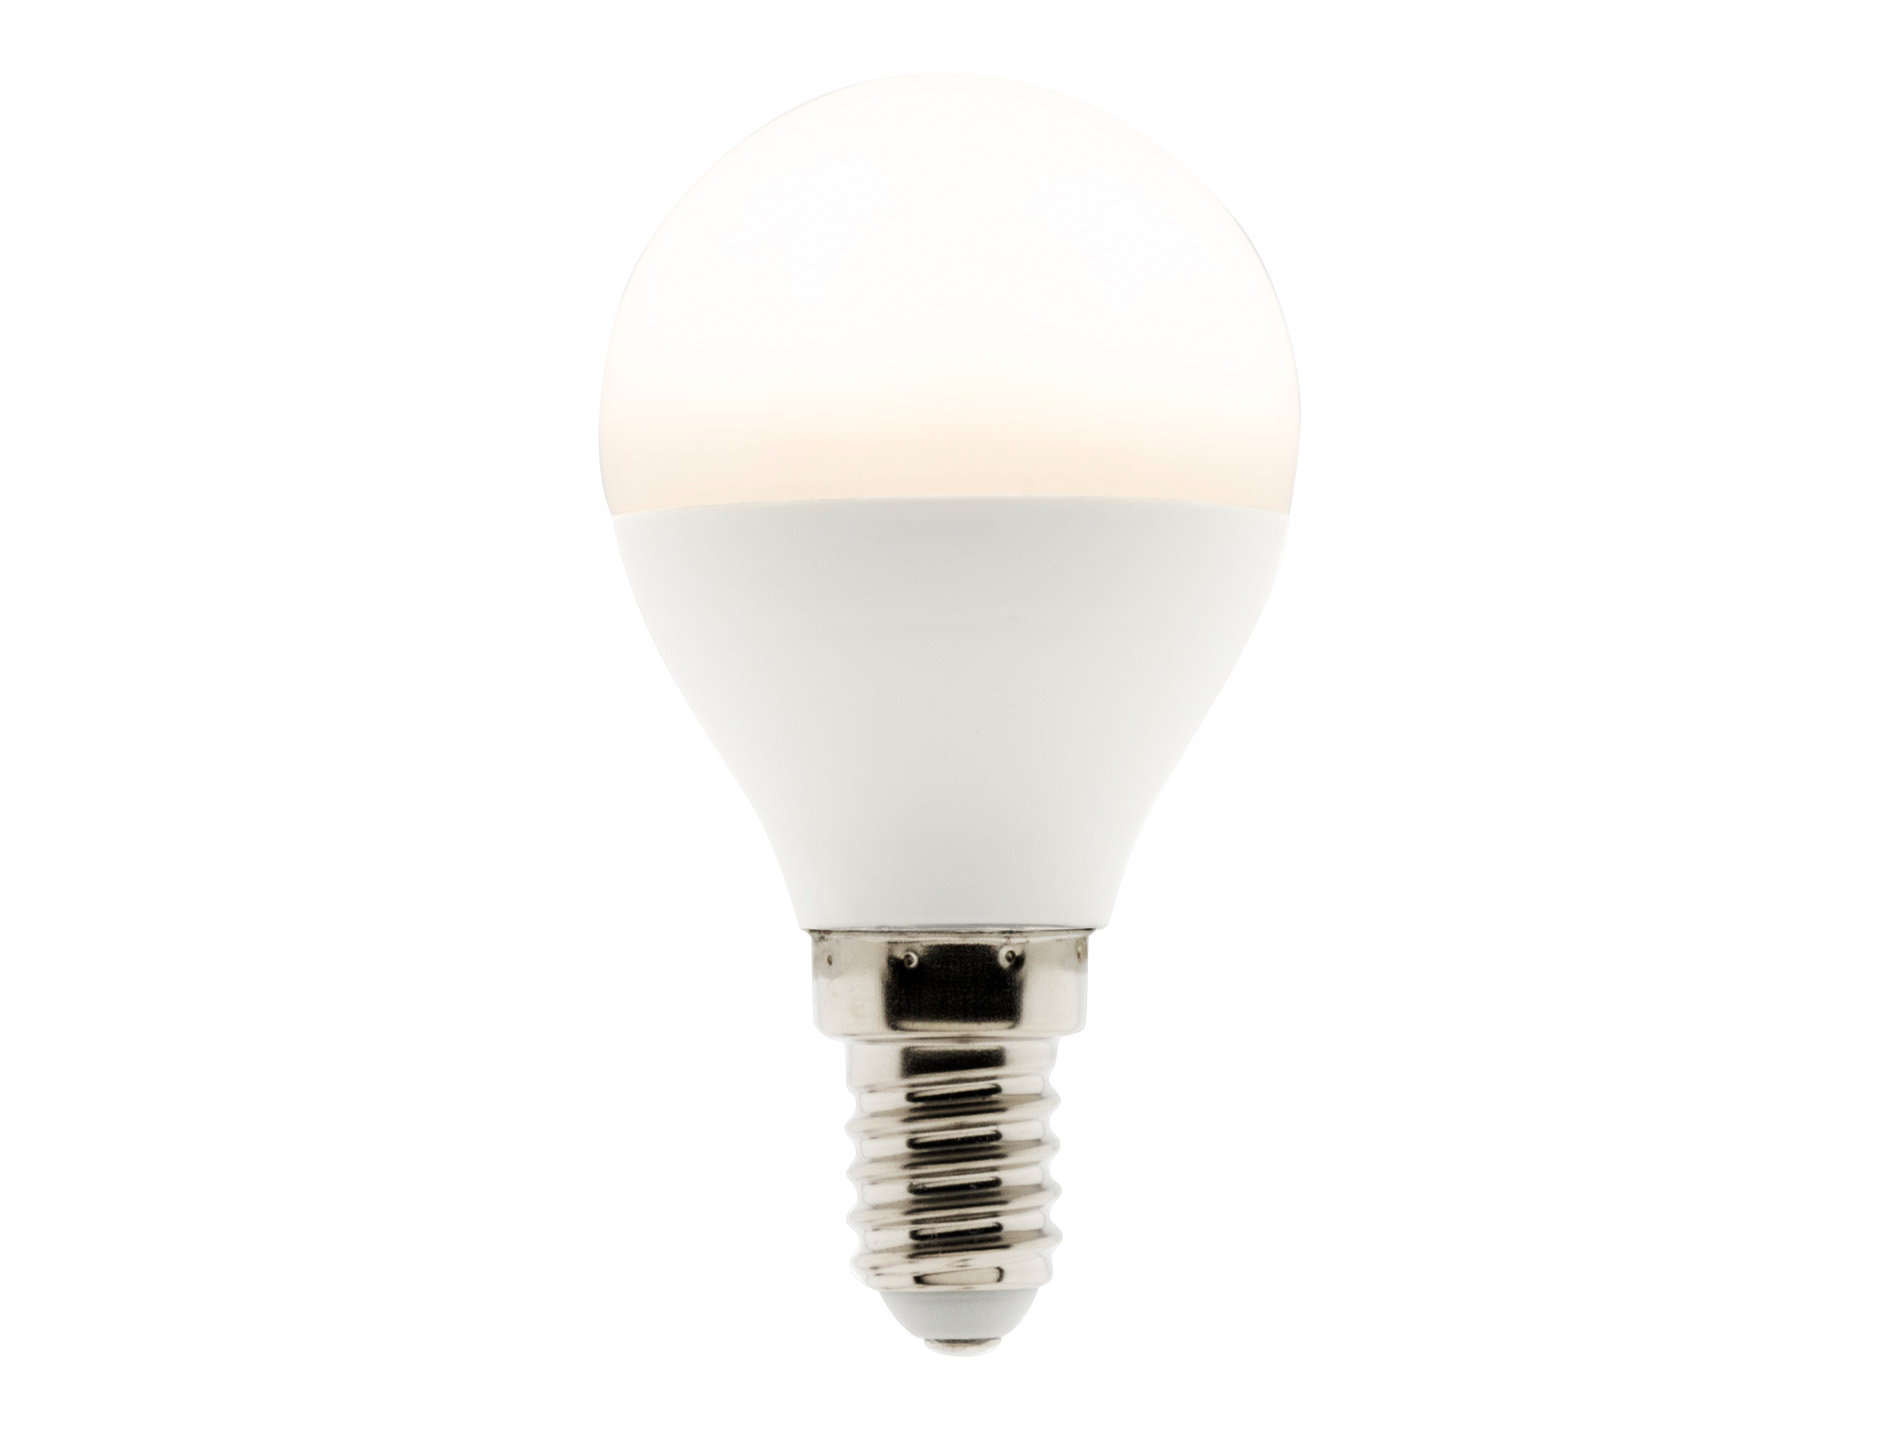 Ampoule Led Dimmable Ampoule Led Dimmable Sphérique 5 2w E14 Ampoules Et Led